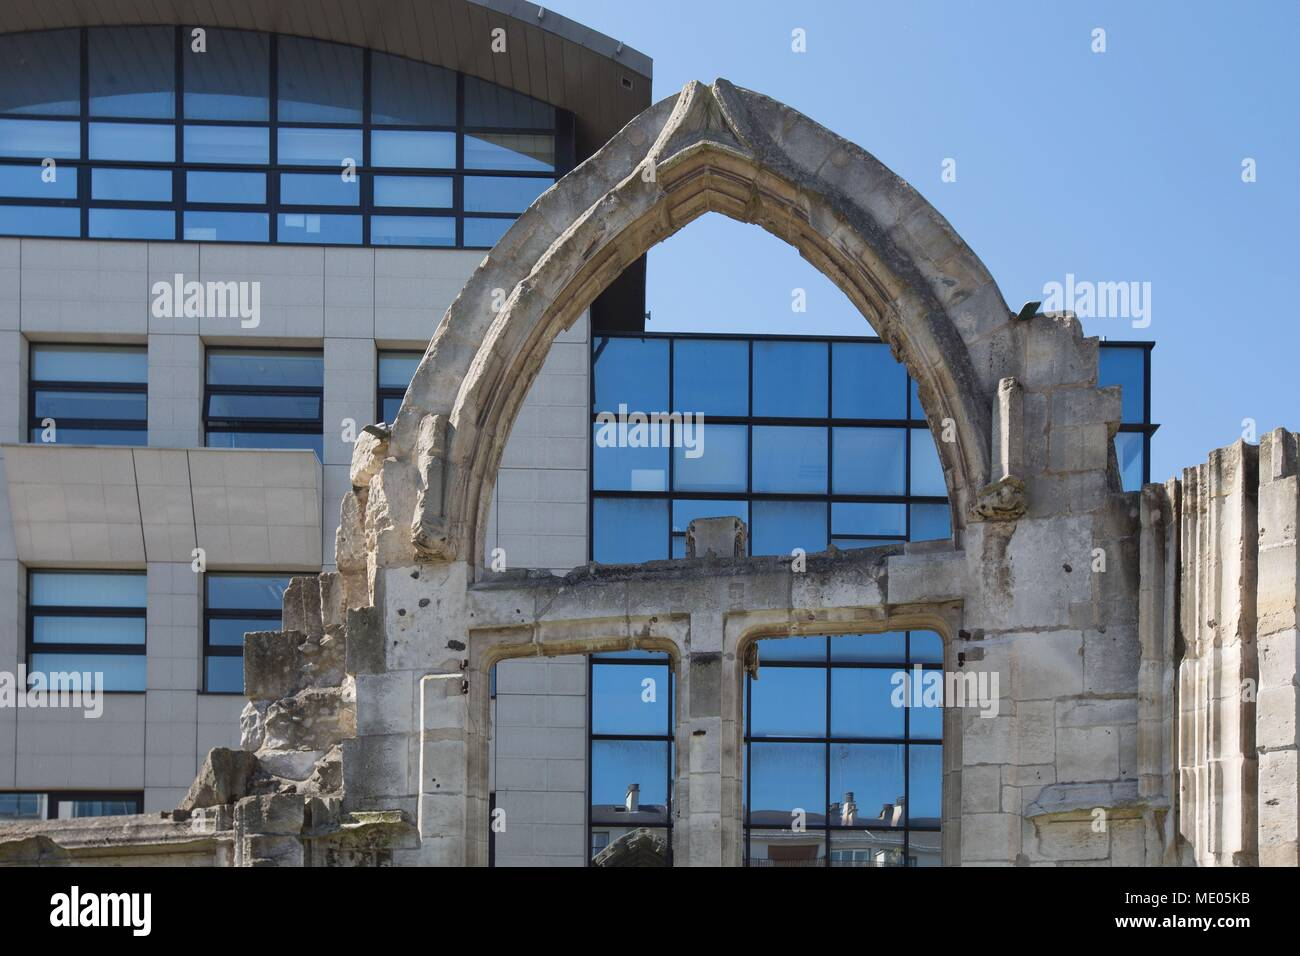 France, Rouen, ruins of the former Church Saint-Vincent, bombarded in 1944, South gate and wall, - Stock Image